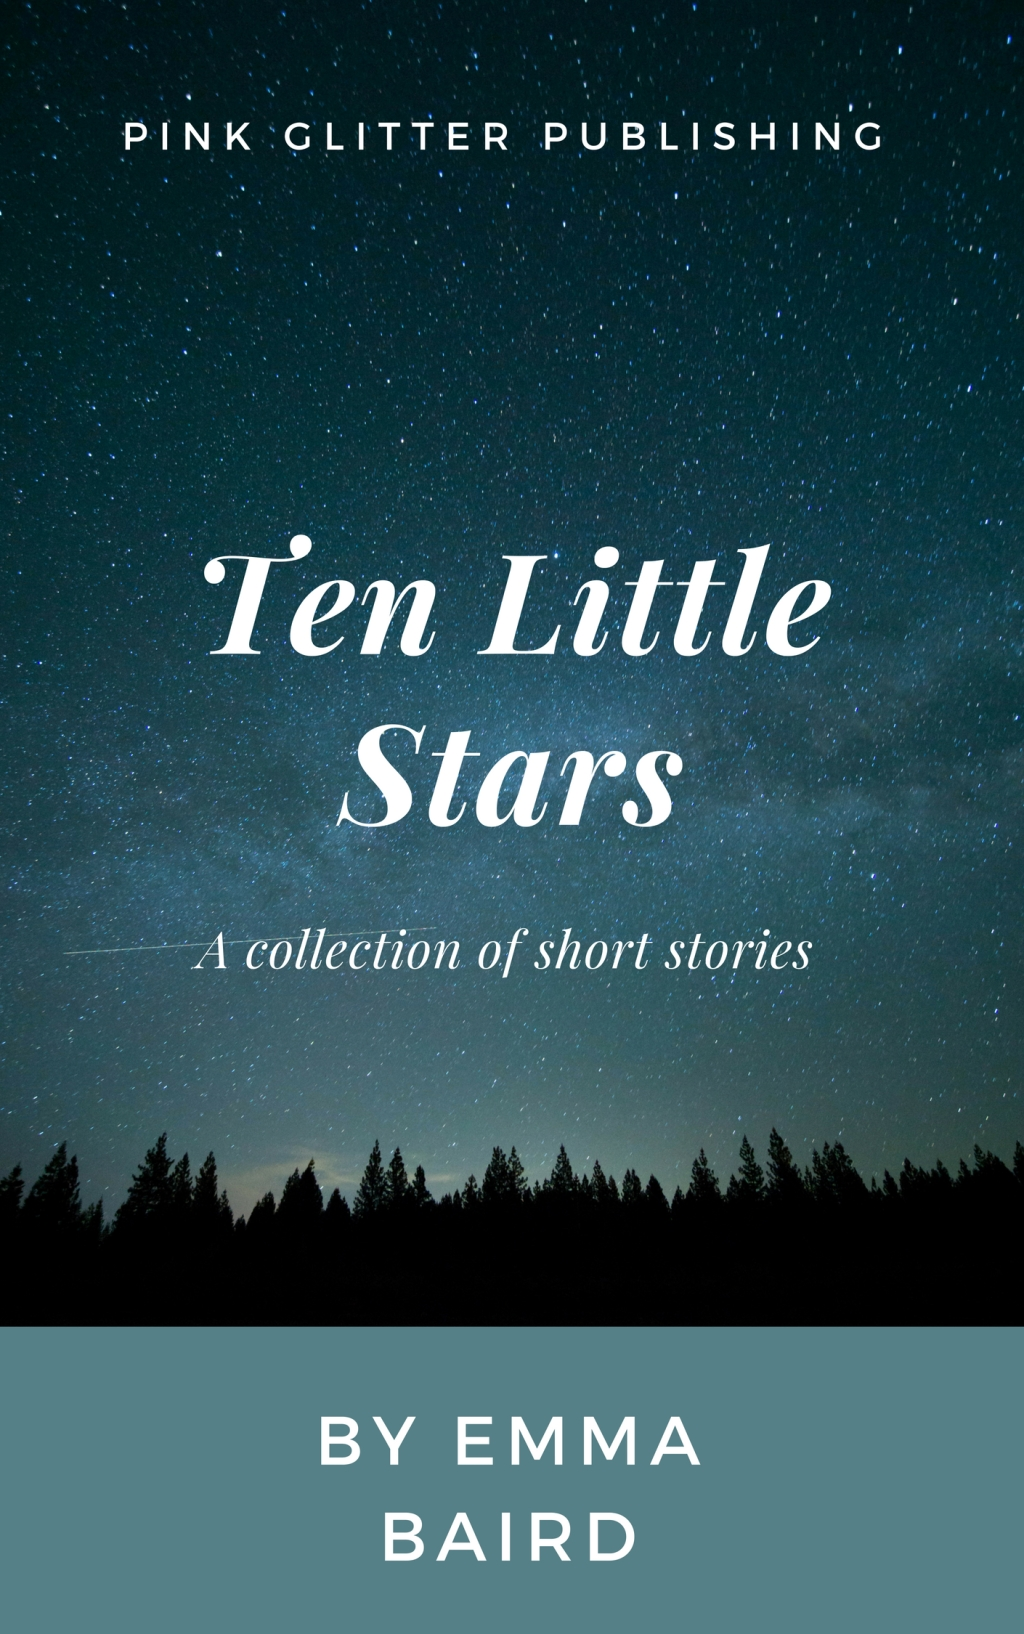 Ten Little Stars by Emma Baird